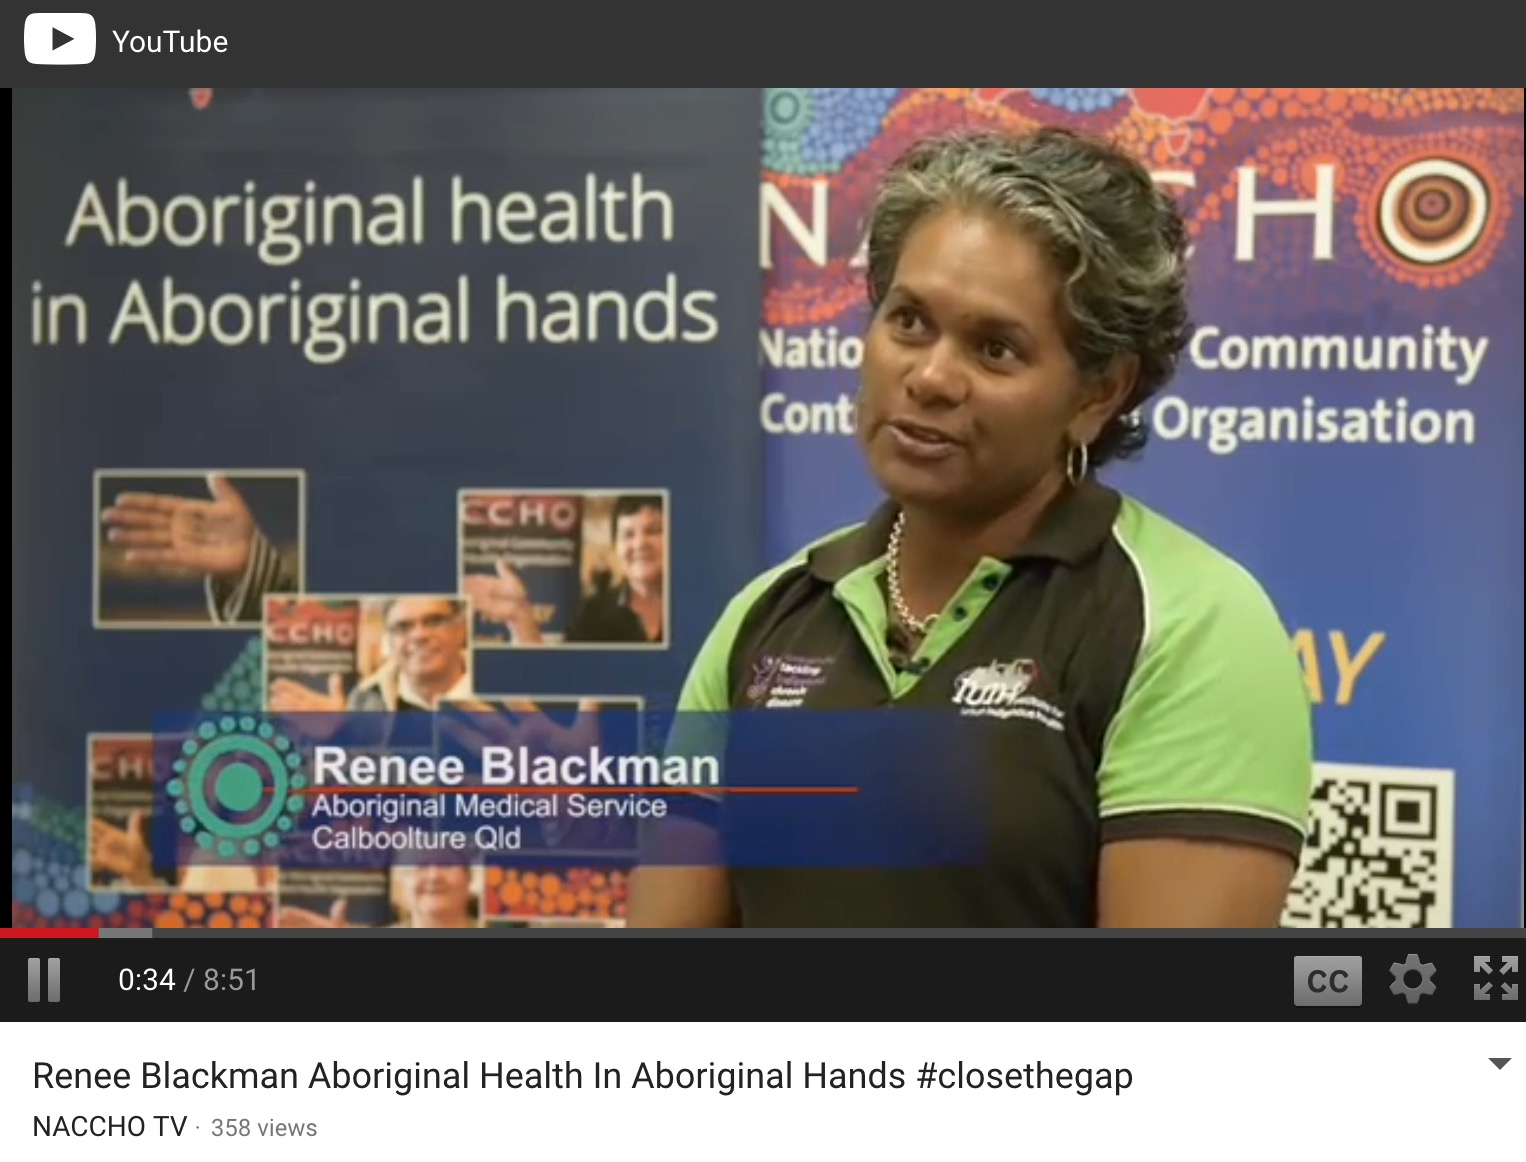 Australian Aboriginal people and health..?